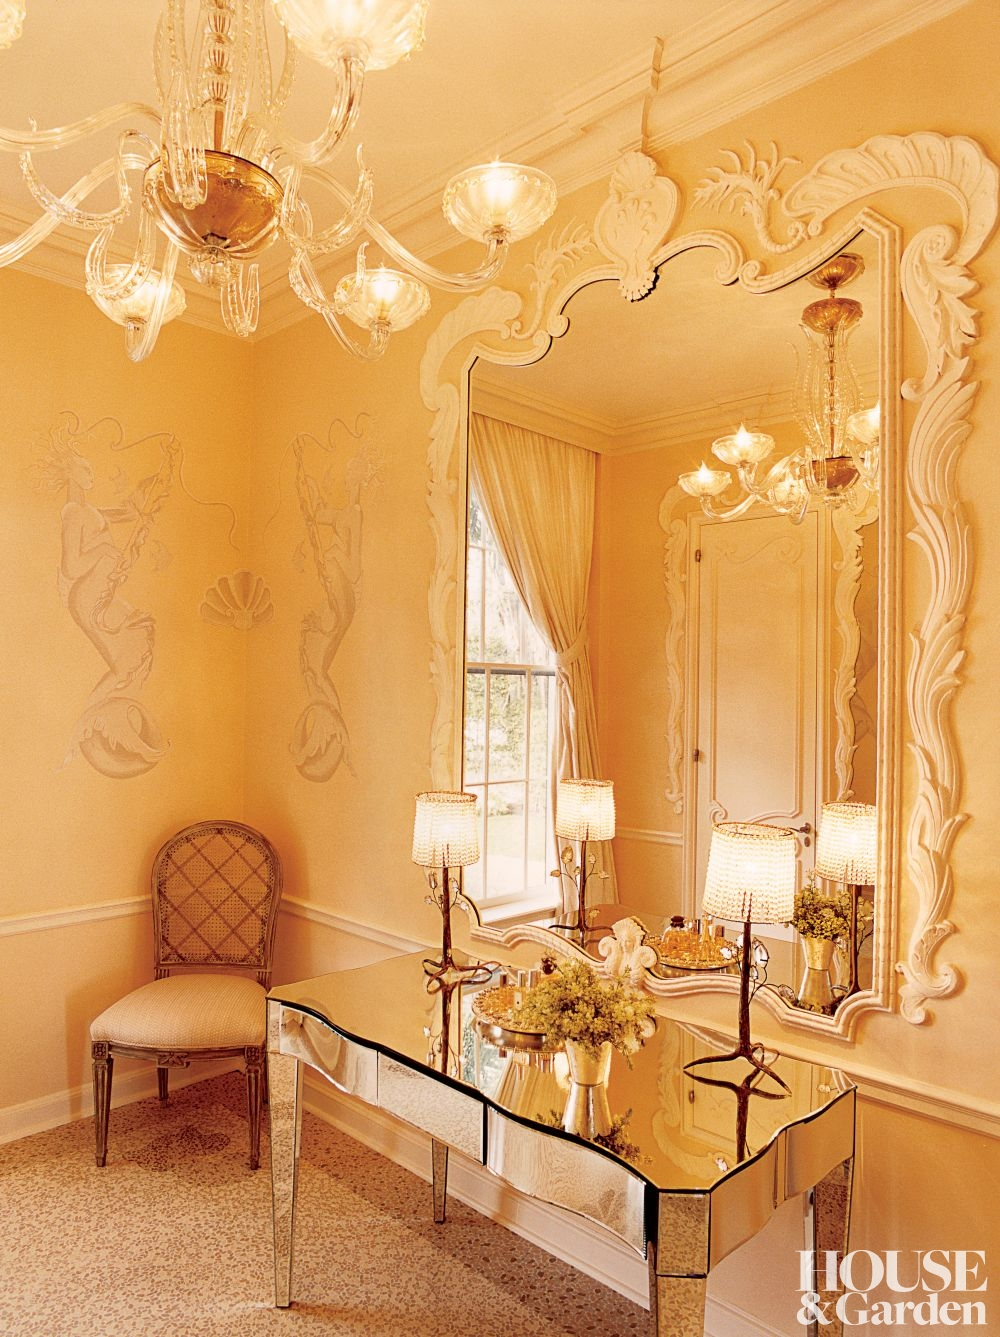 Ross Wall Decor Gallery - home design wall stickers